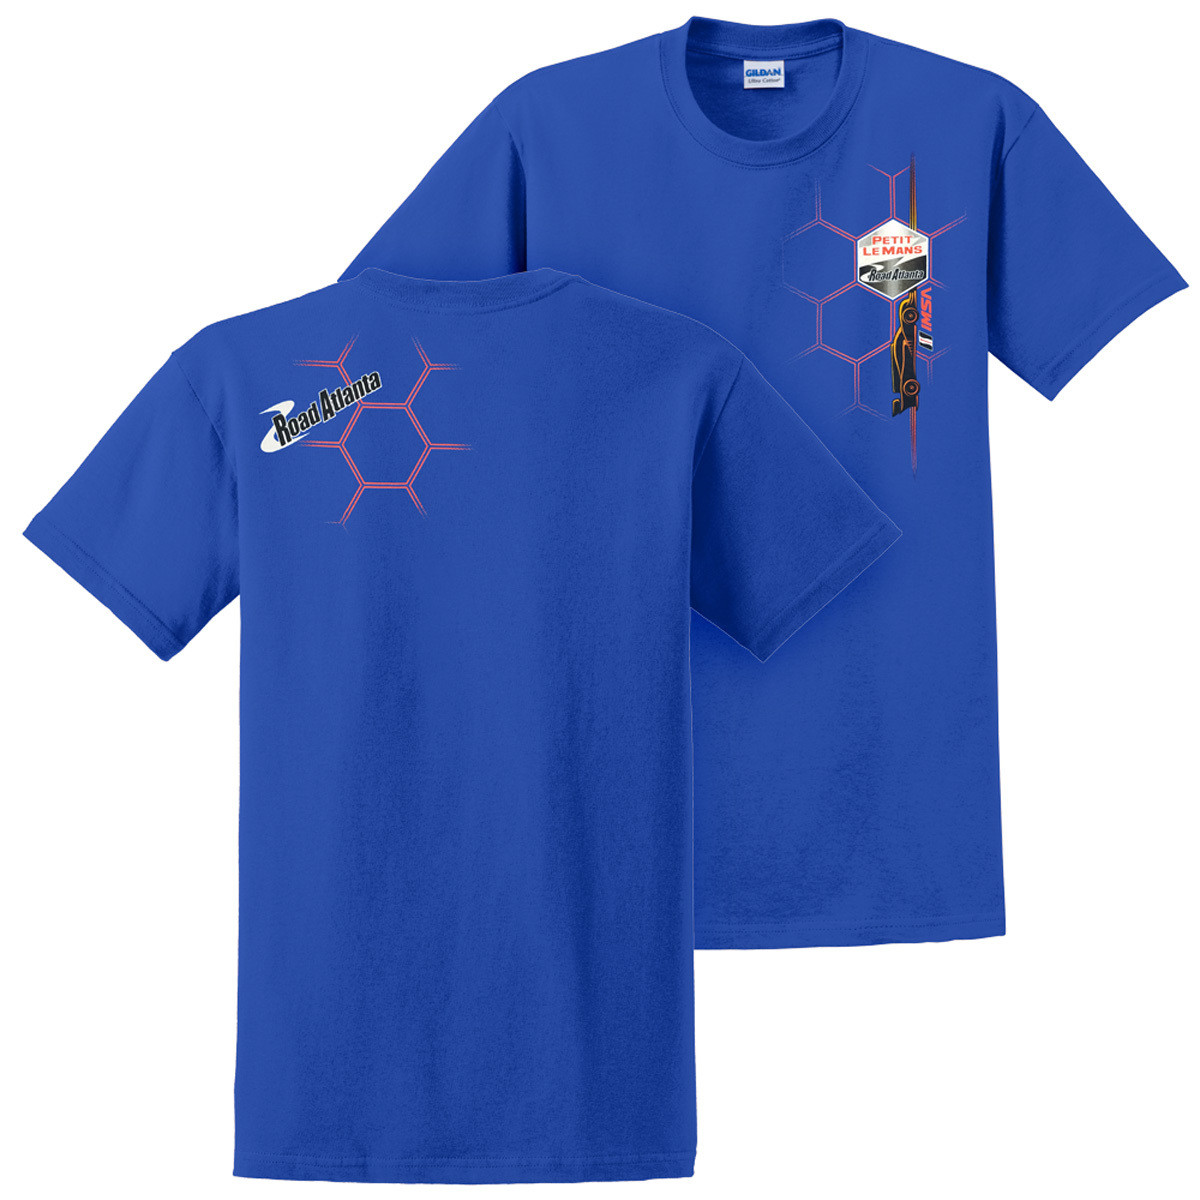 PLM Honeycomb Design Tee - Royal